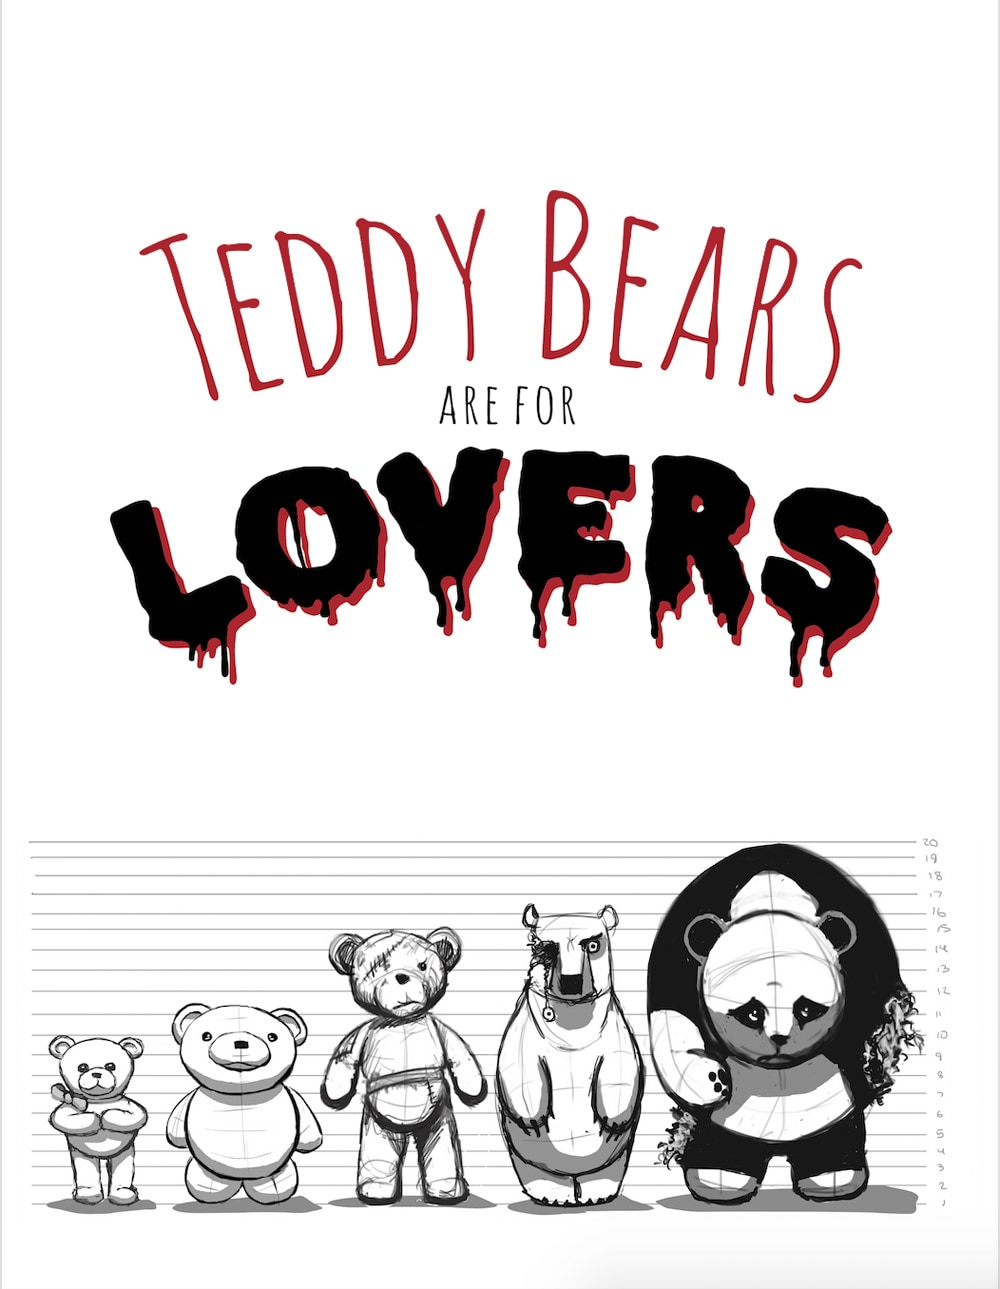 TBAFL poster - New Short Shows that Teddy Bears Are for Lovers